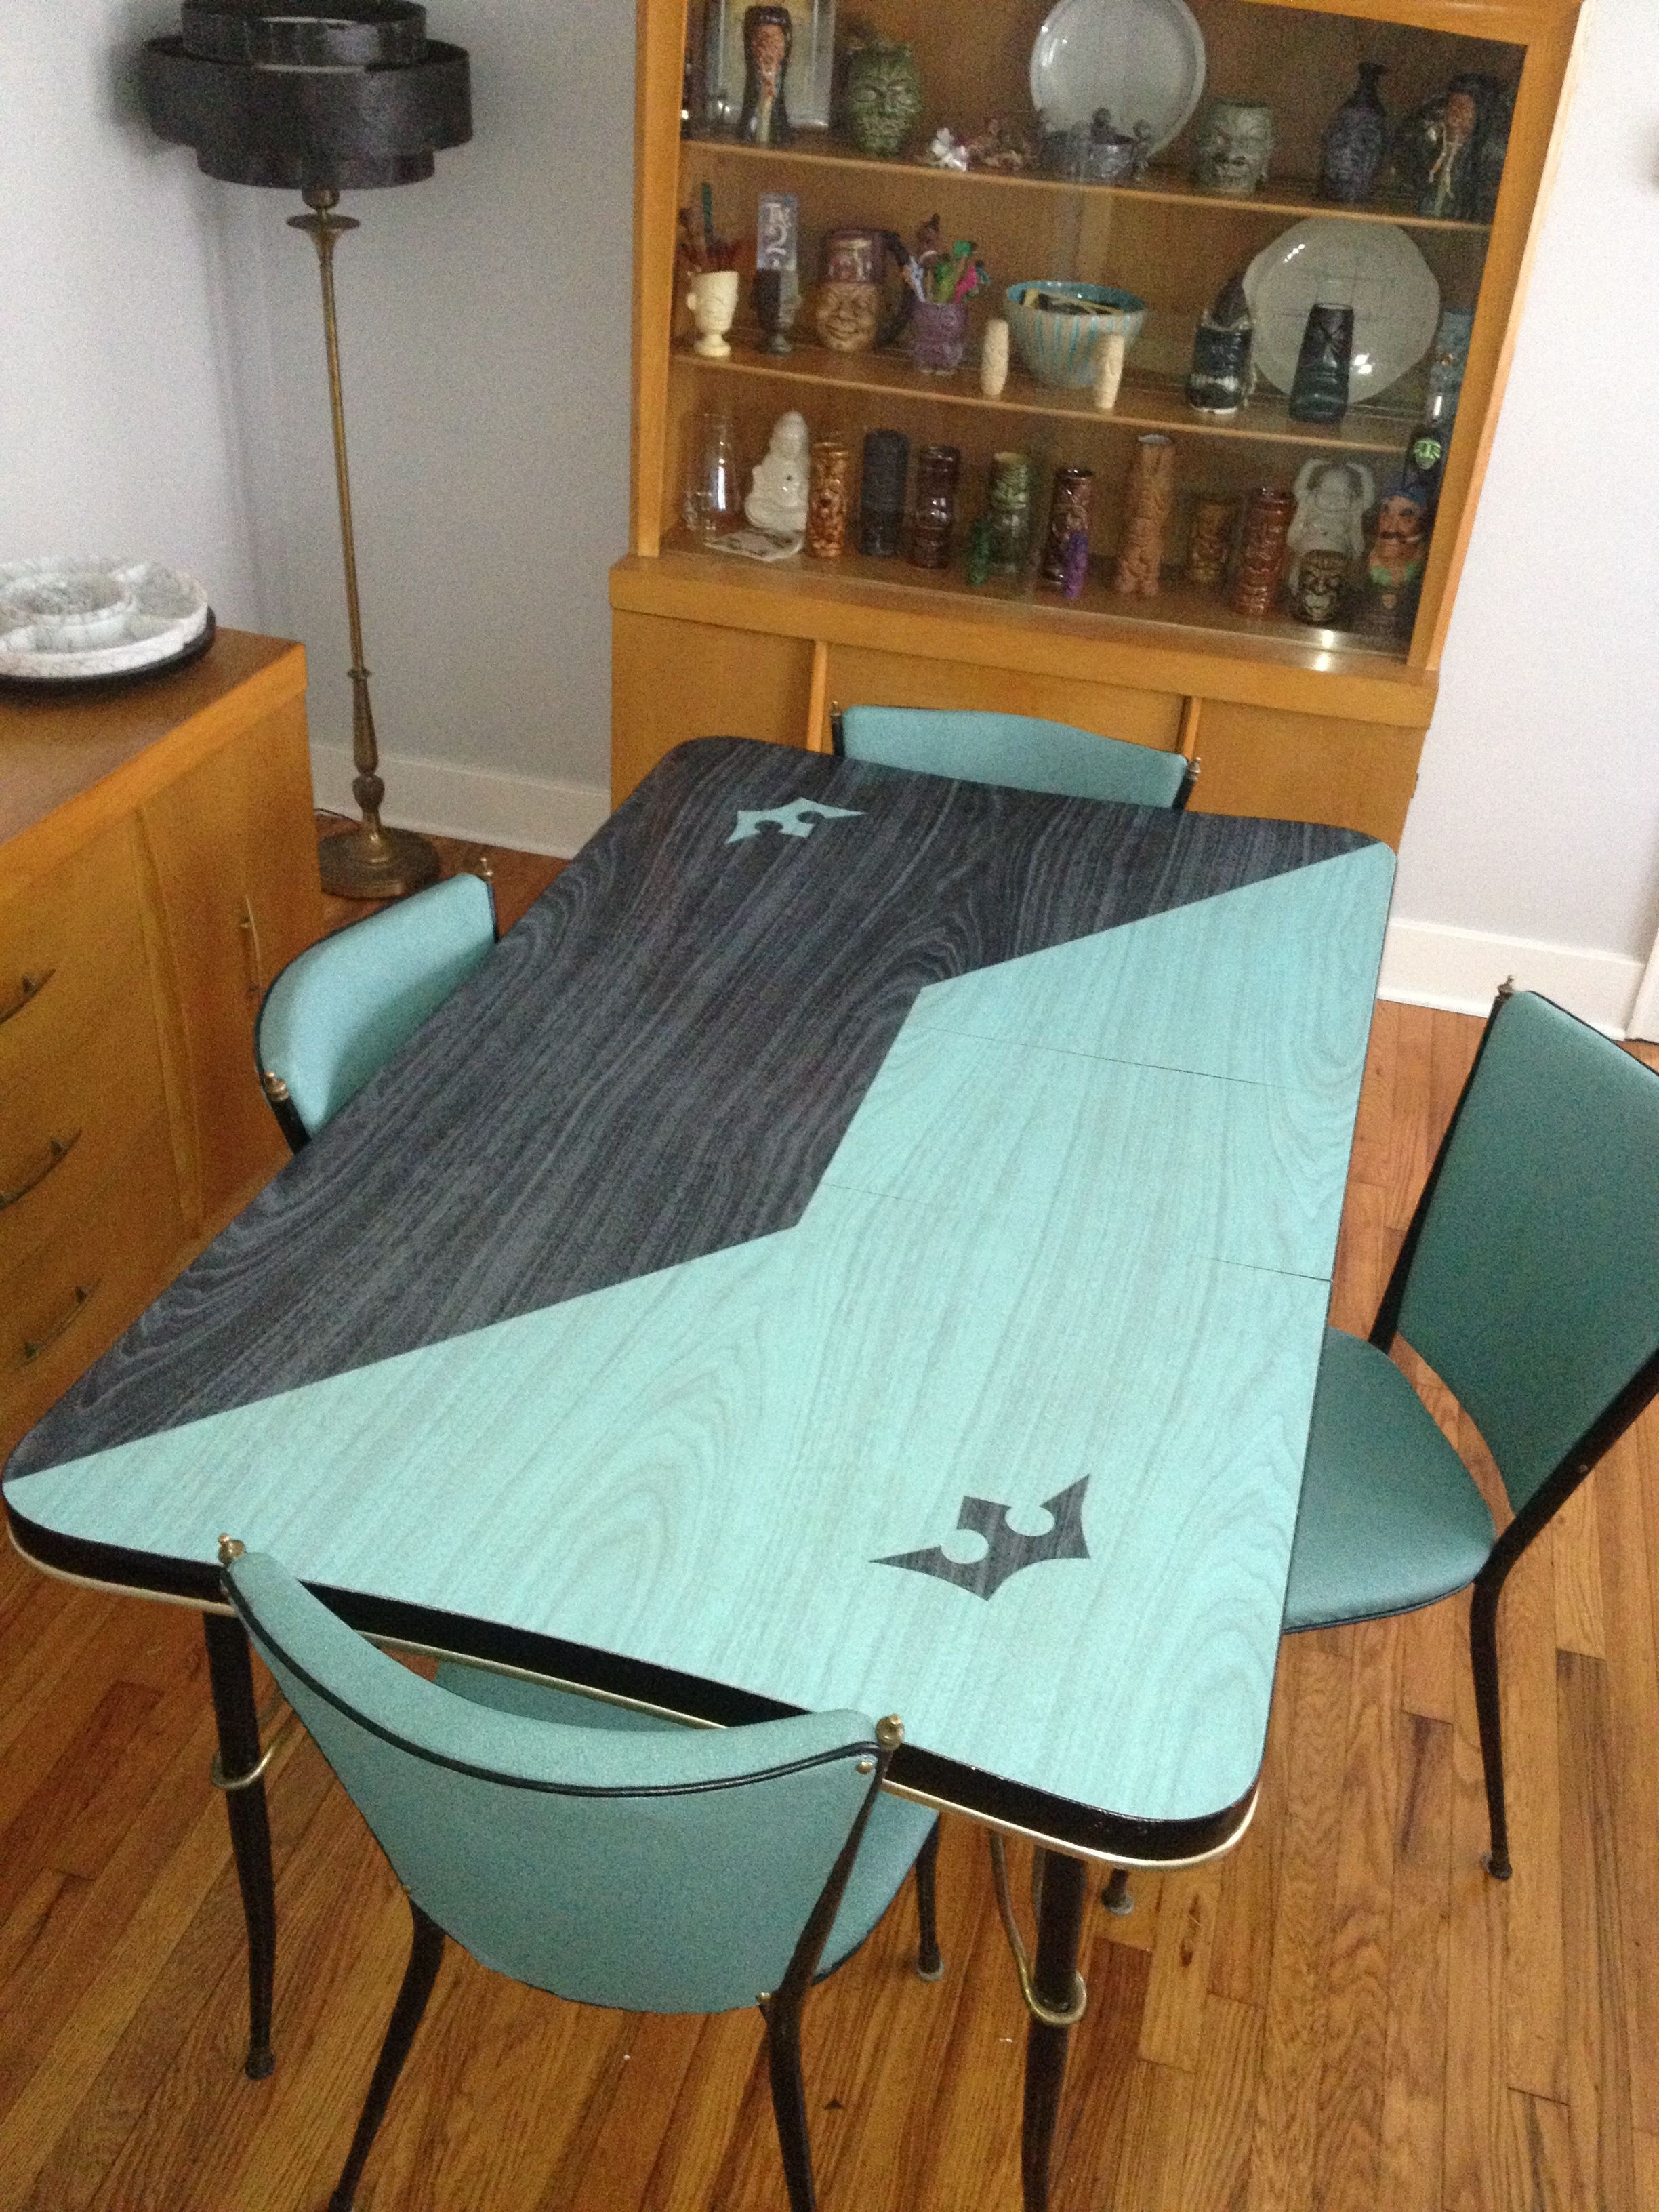 teal kitchen chairs Tables